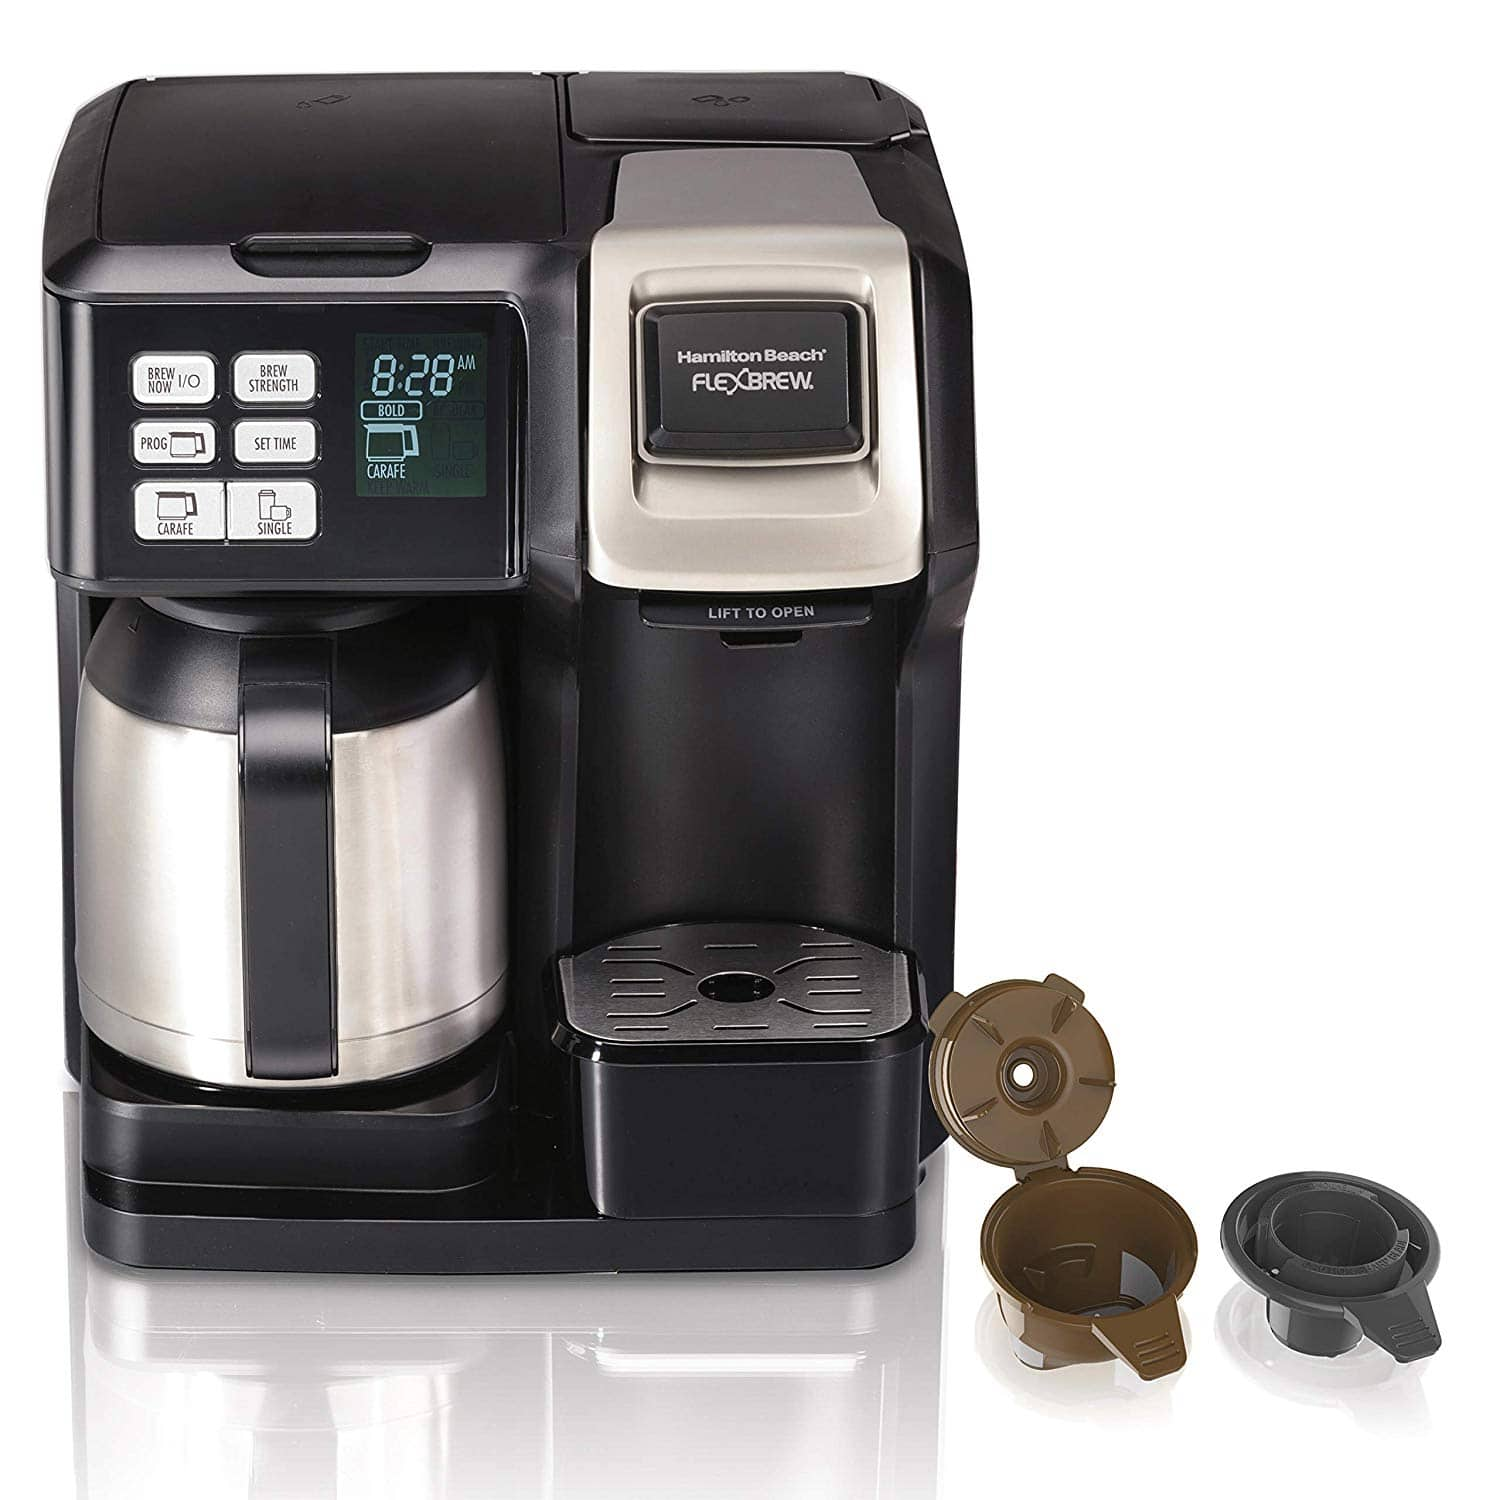 $69.99 (42% off) Hamilton Beach 10-Cup FlexBrew Thermal Coffee Maker-Wayfair and Amazon